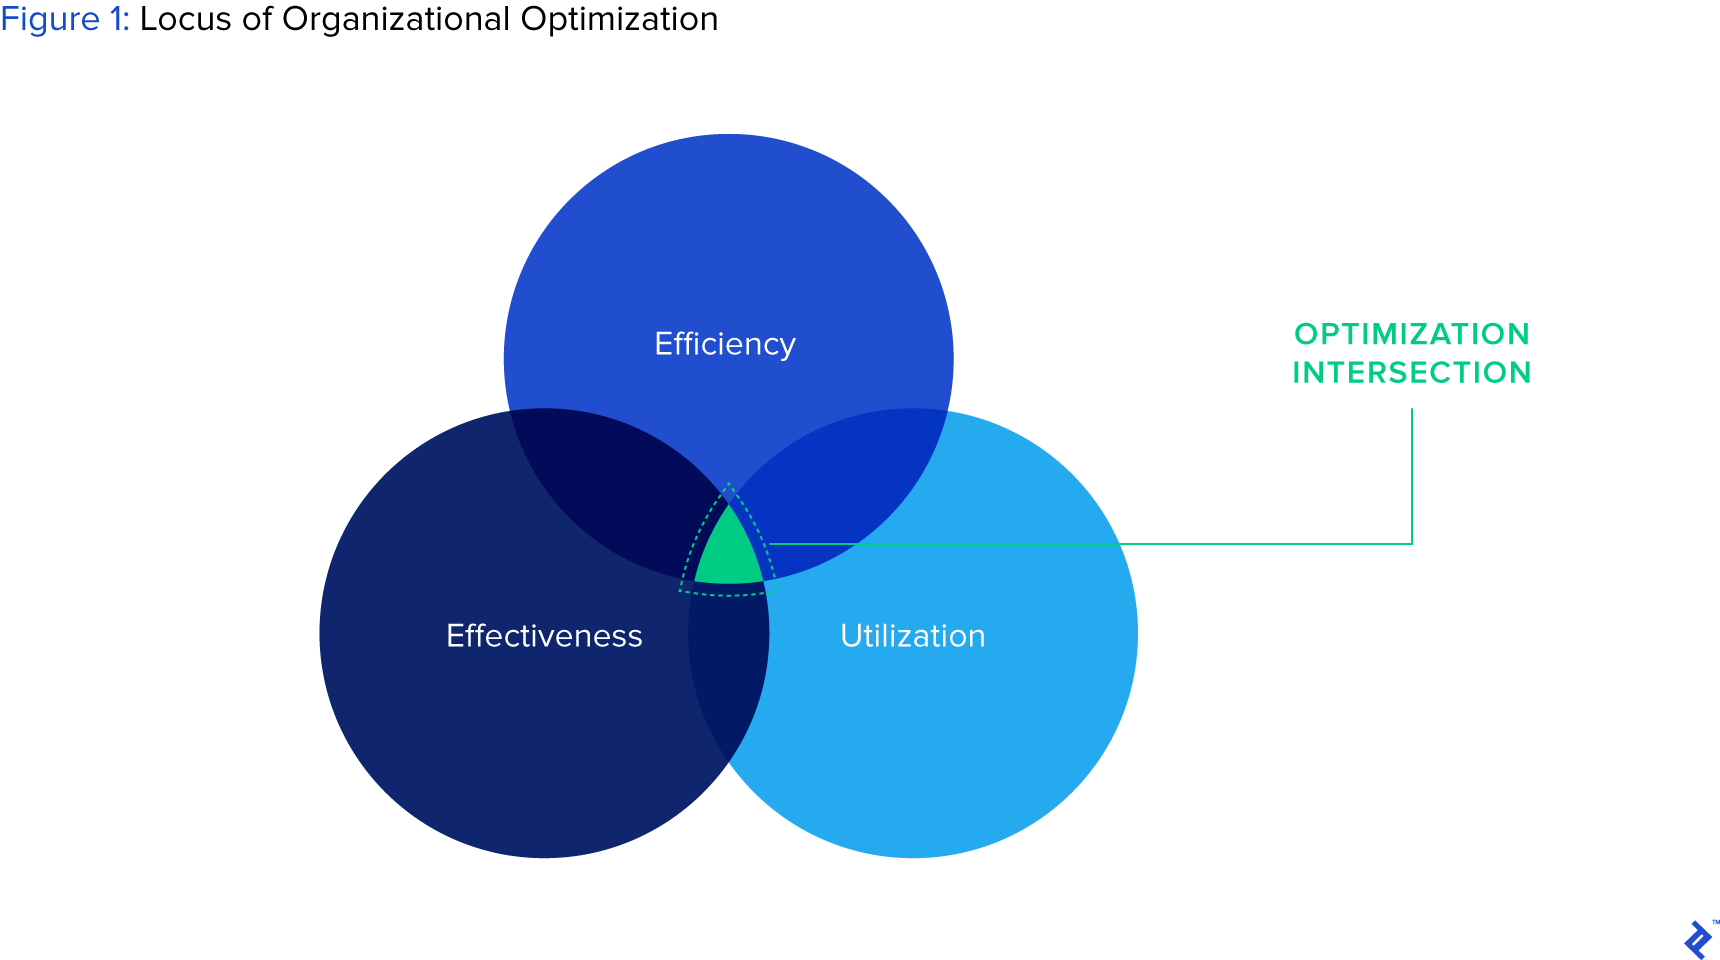 Locus of Organizational Optimization